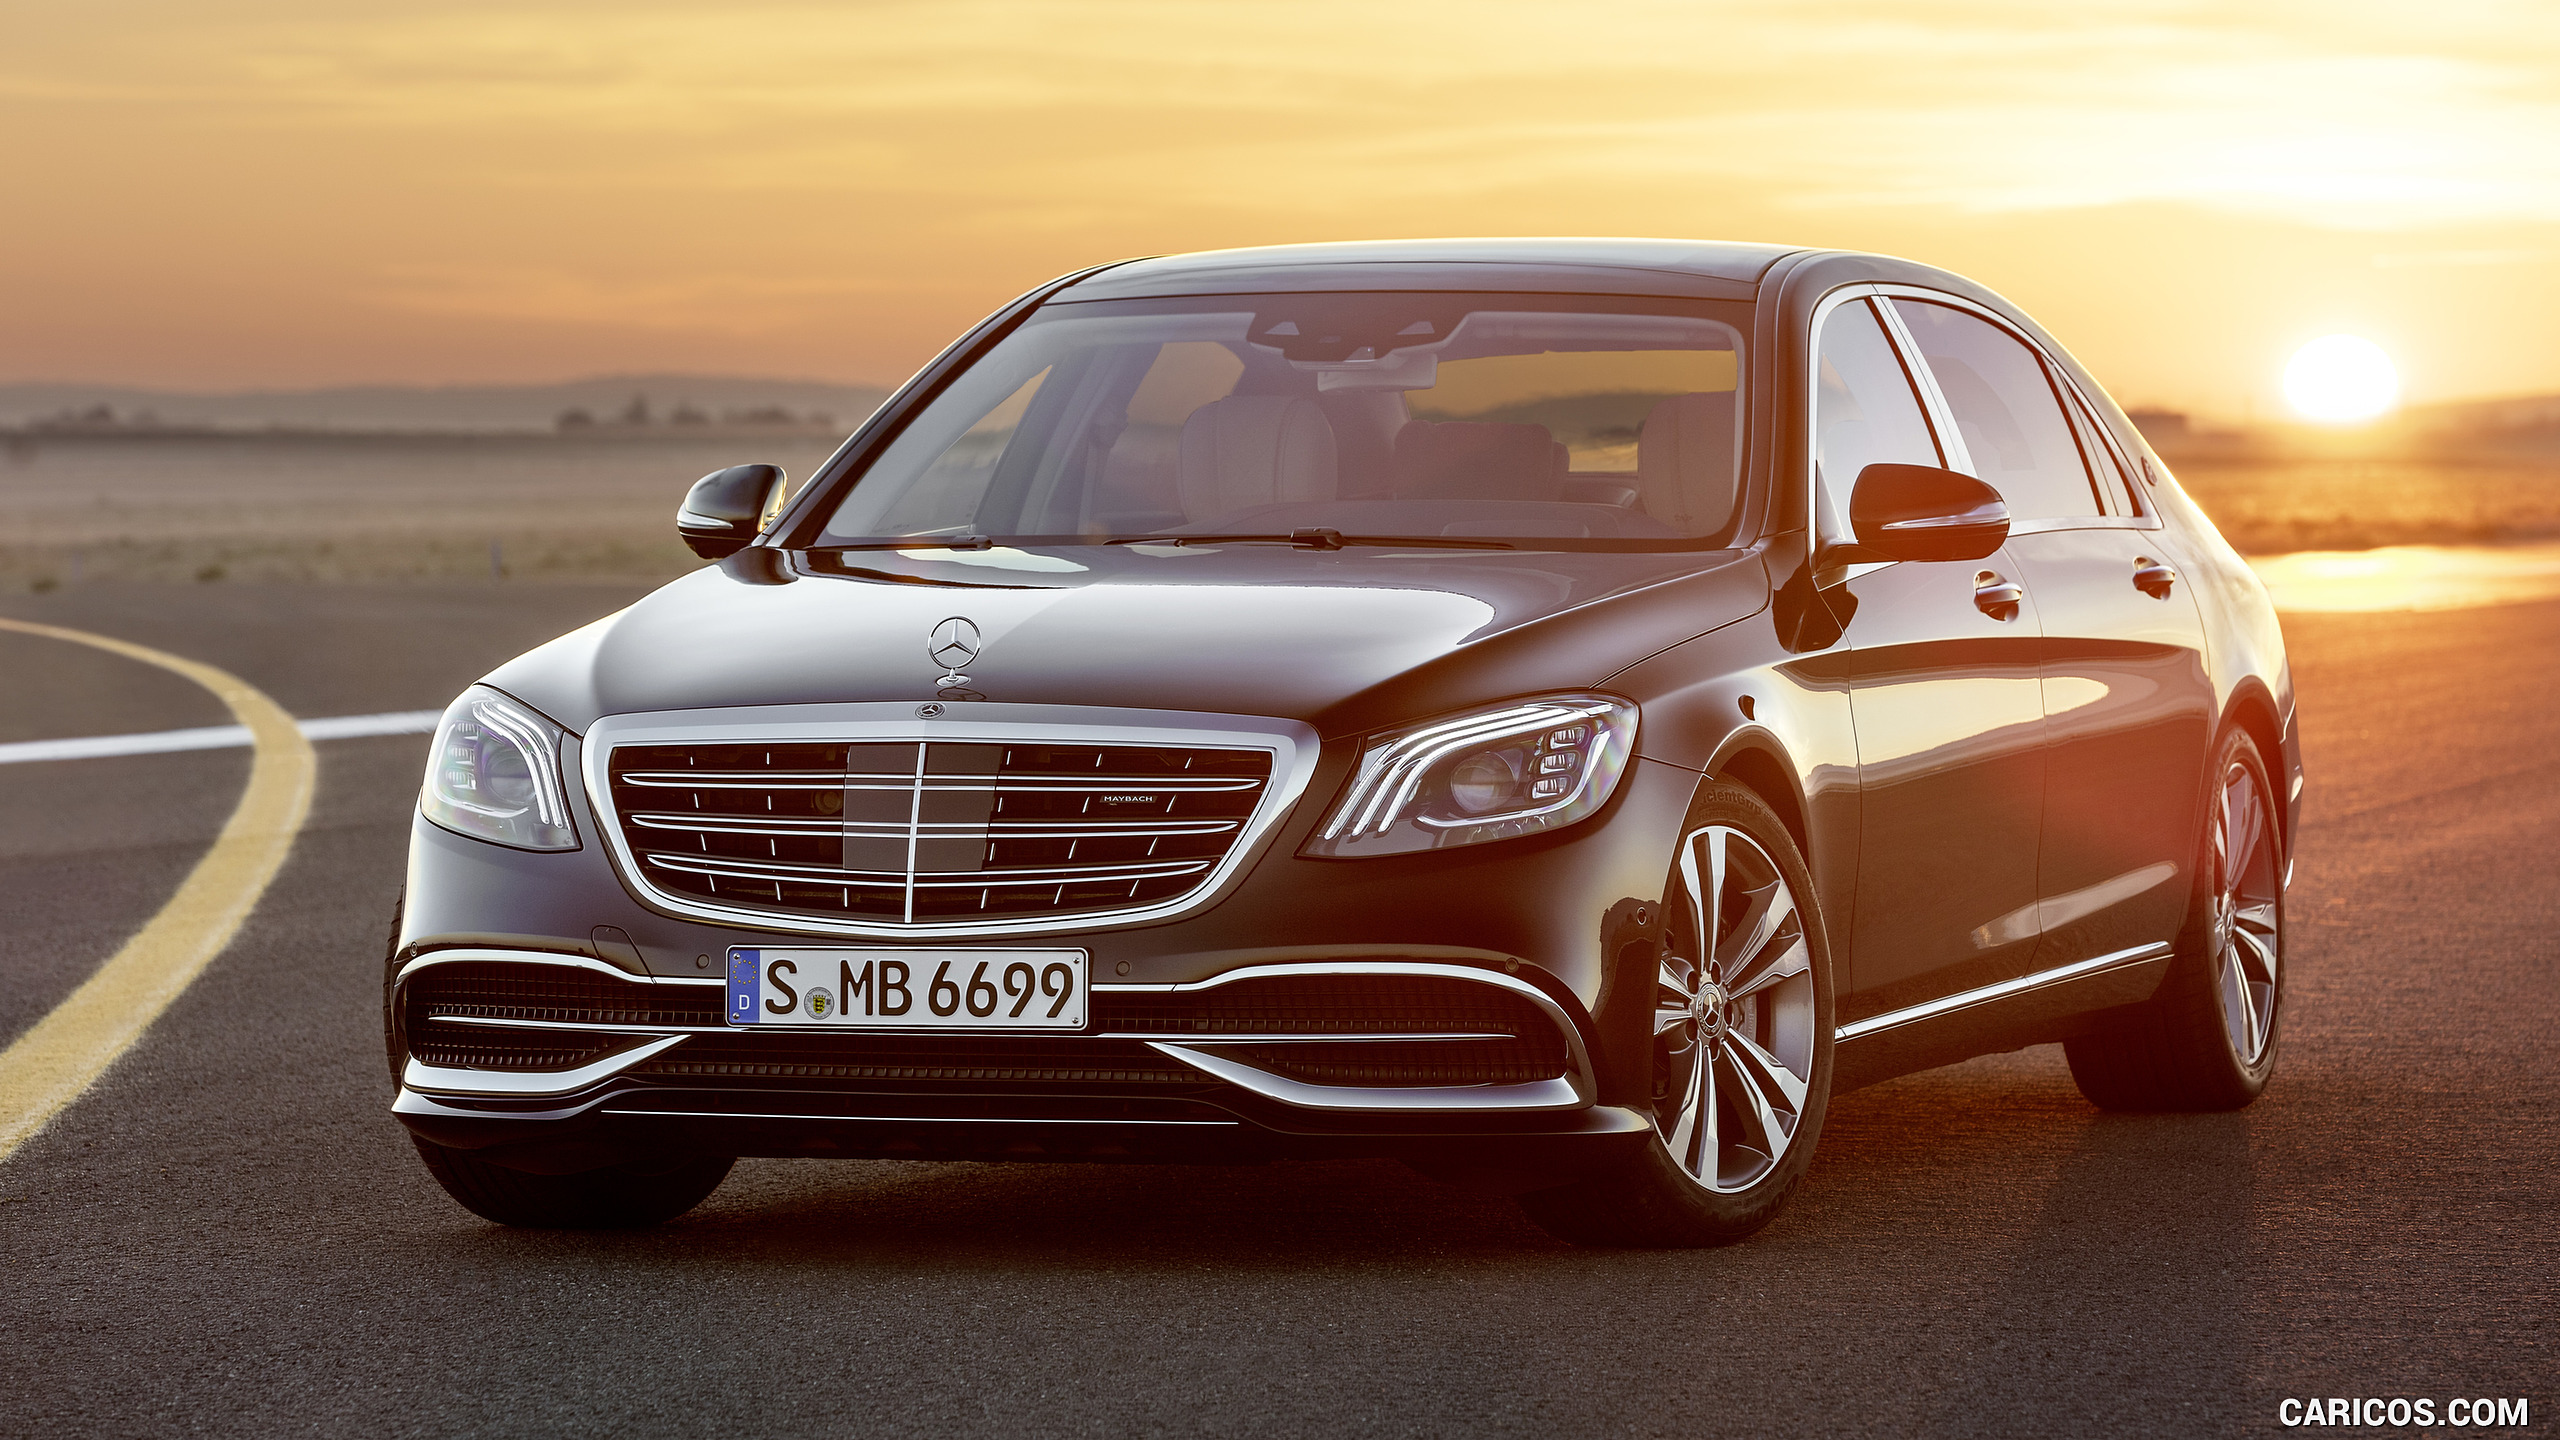 2018 Mercedes Maybach S Class S650 Black   Front Caricos 2560x1440